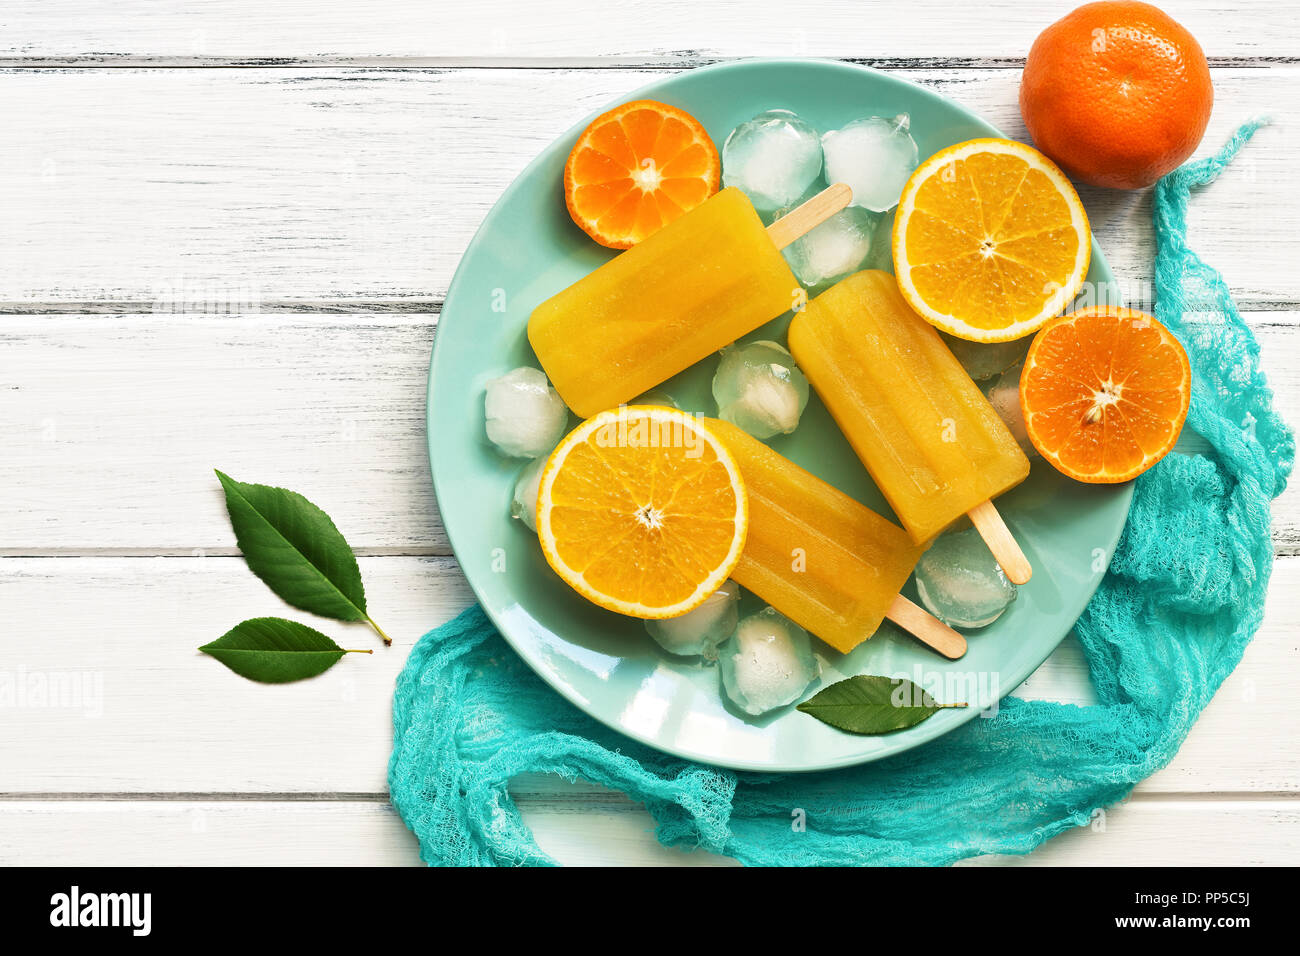 Orange Tangerine popsicles in blue plate with ice cubes and slices of fruit, white wooden rustic background. Top view, copy space - Stock Image